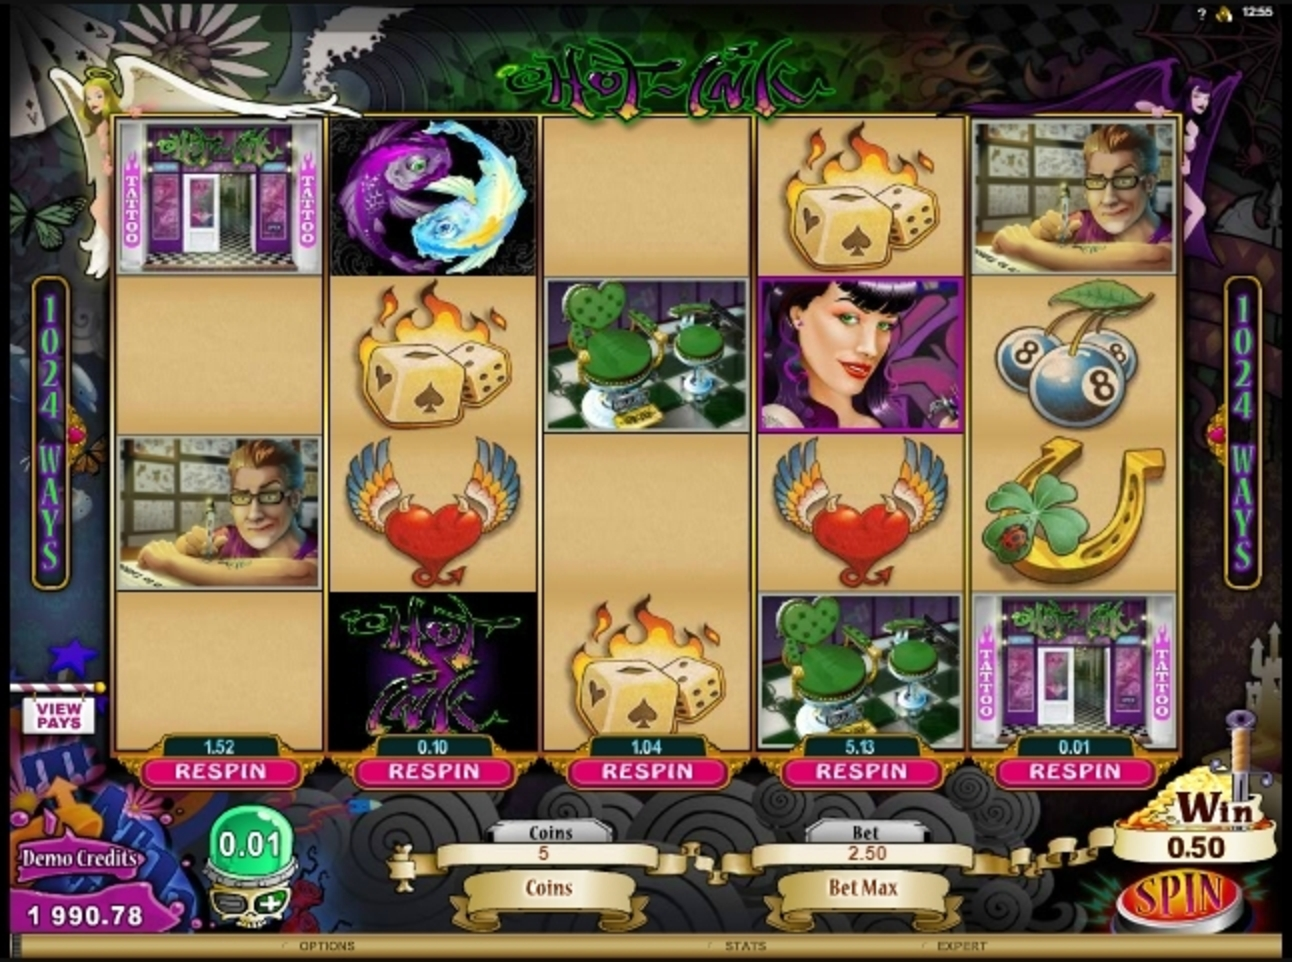 Win Money in Hot Ink Free Slot Game by Microgaming